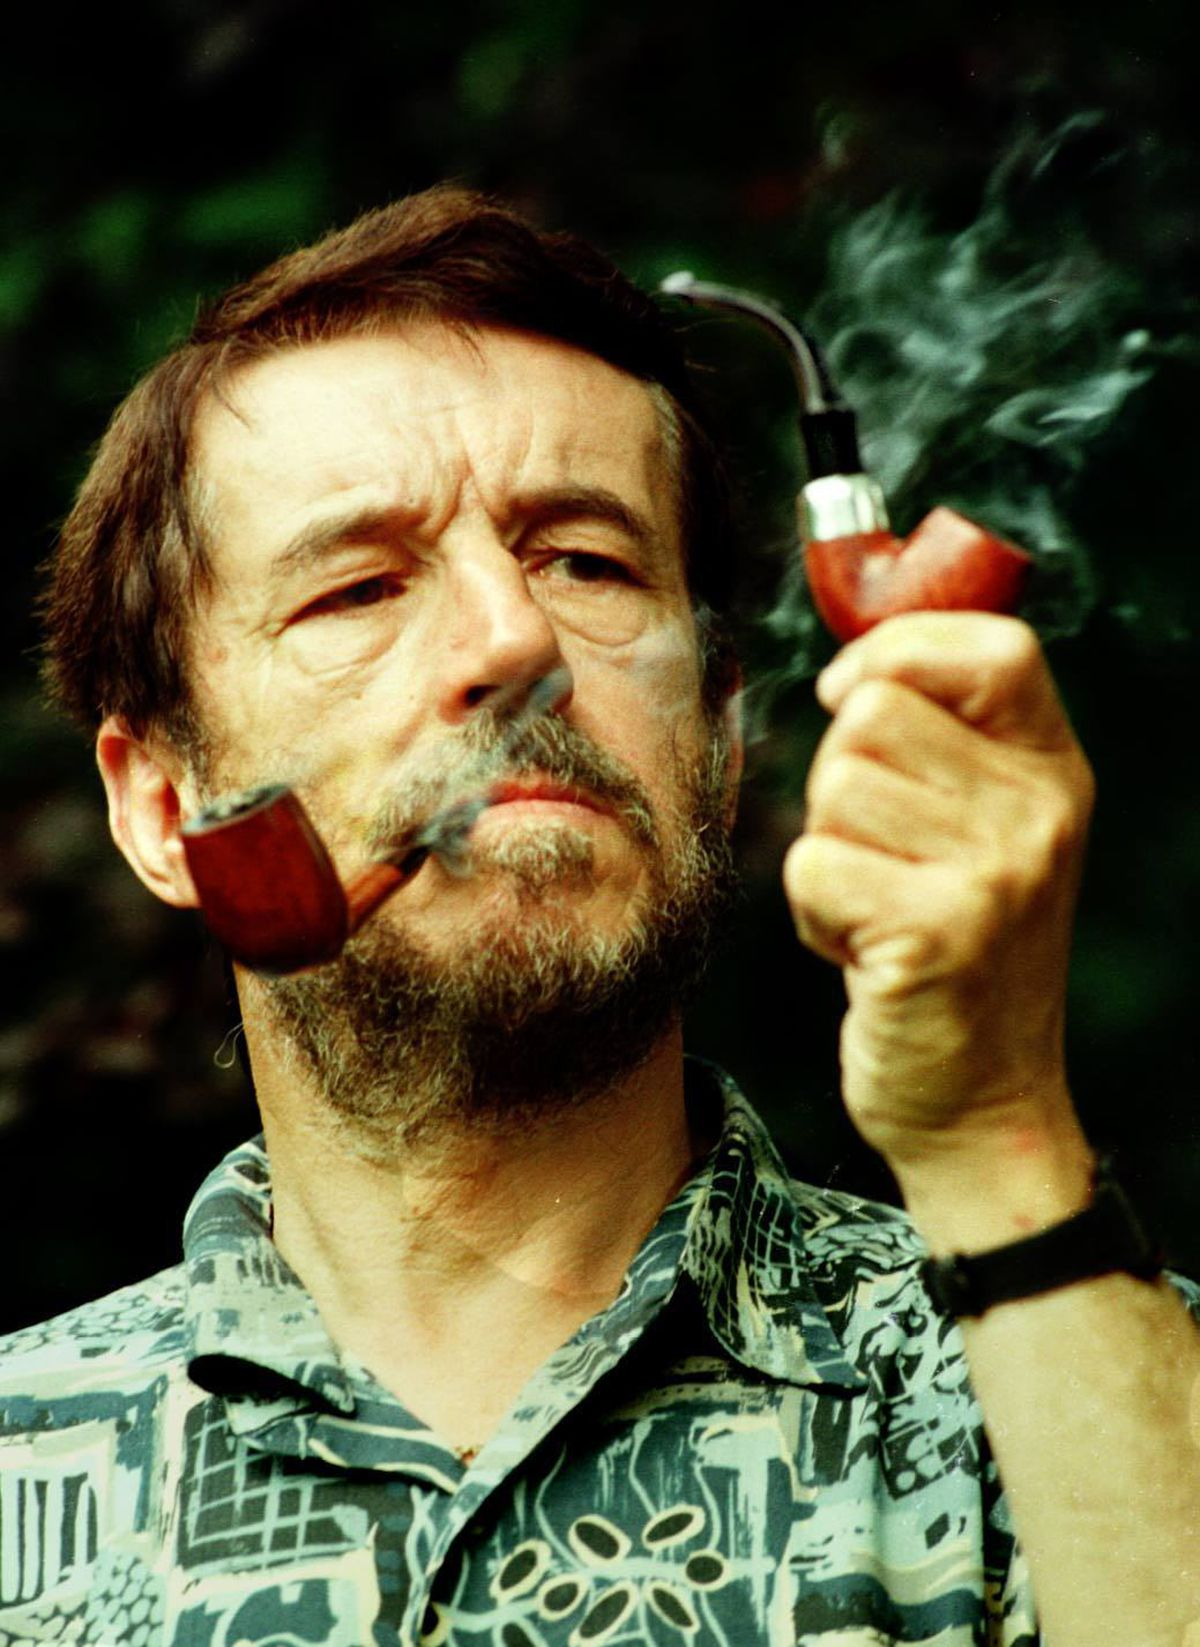 Shropshire author Guy N Smith was British Pipe Smoking Champion in 1996 and 2003